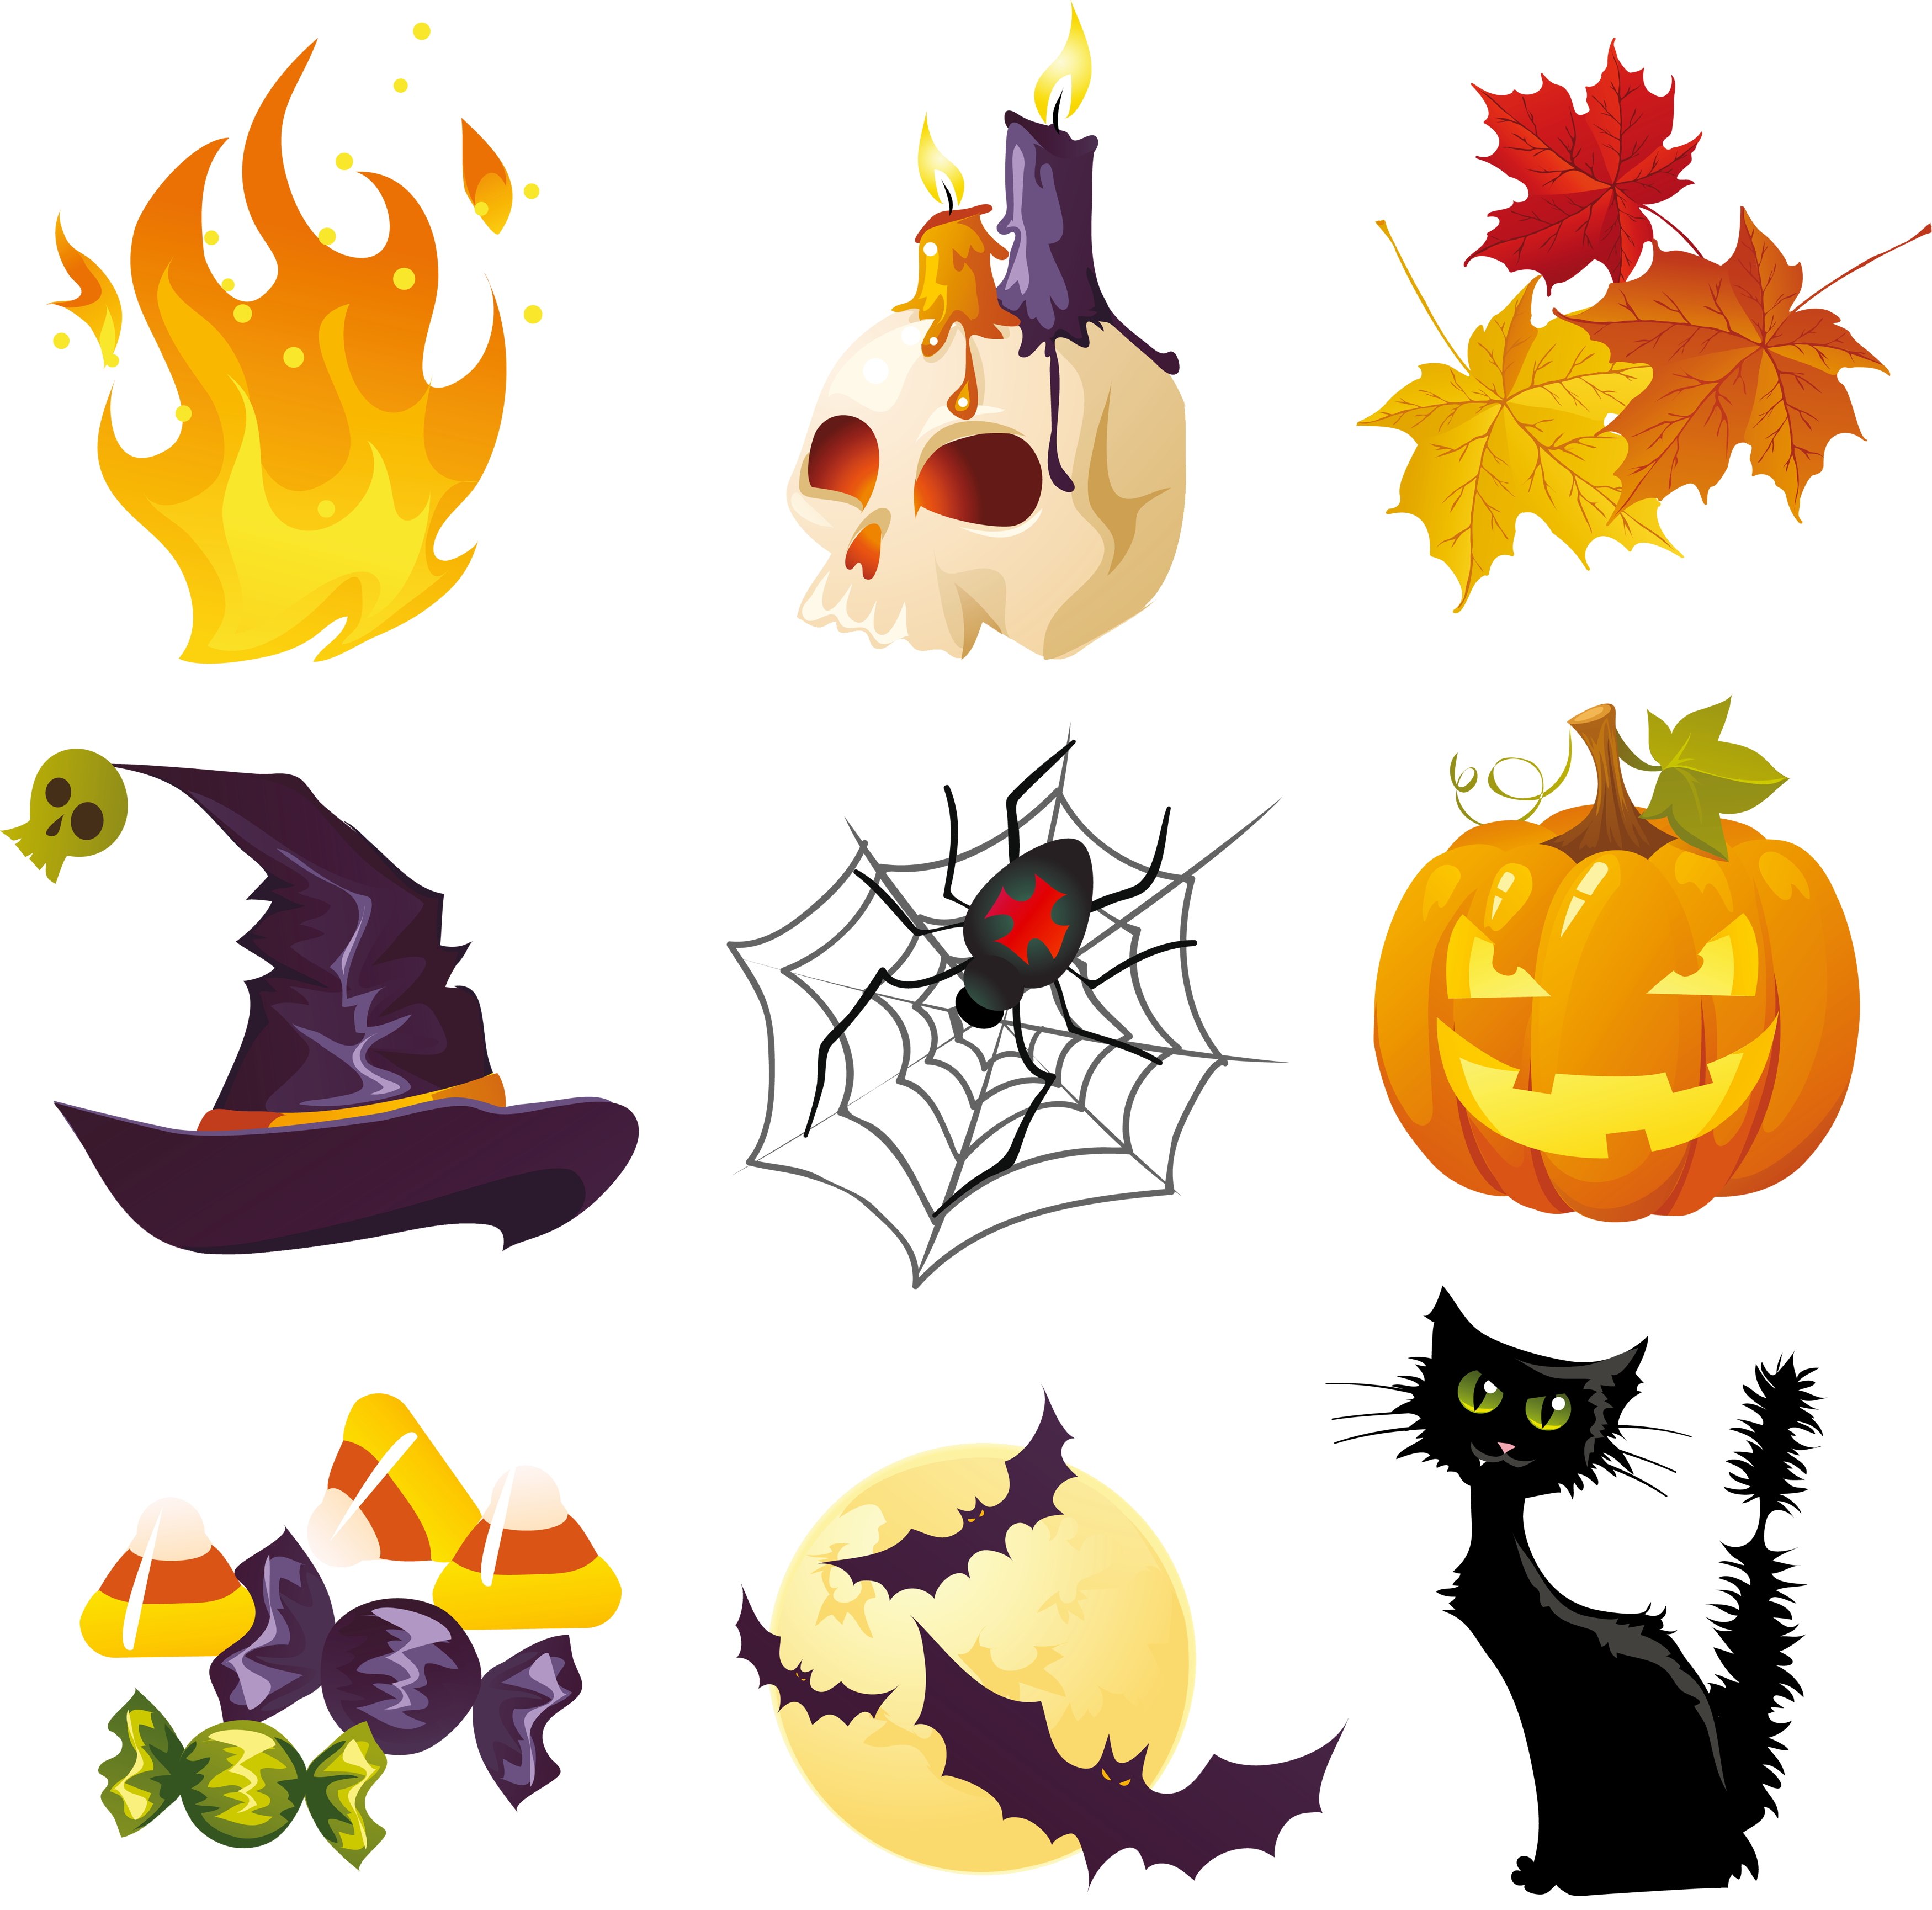 Halloween decorations clip art clipart images gallery for.